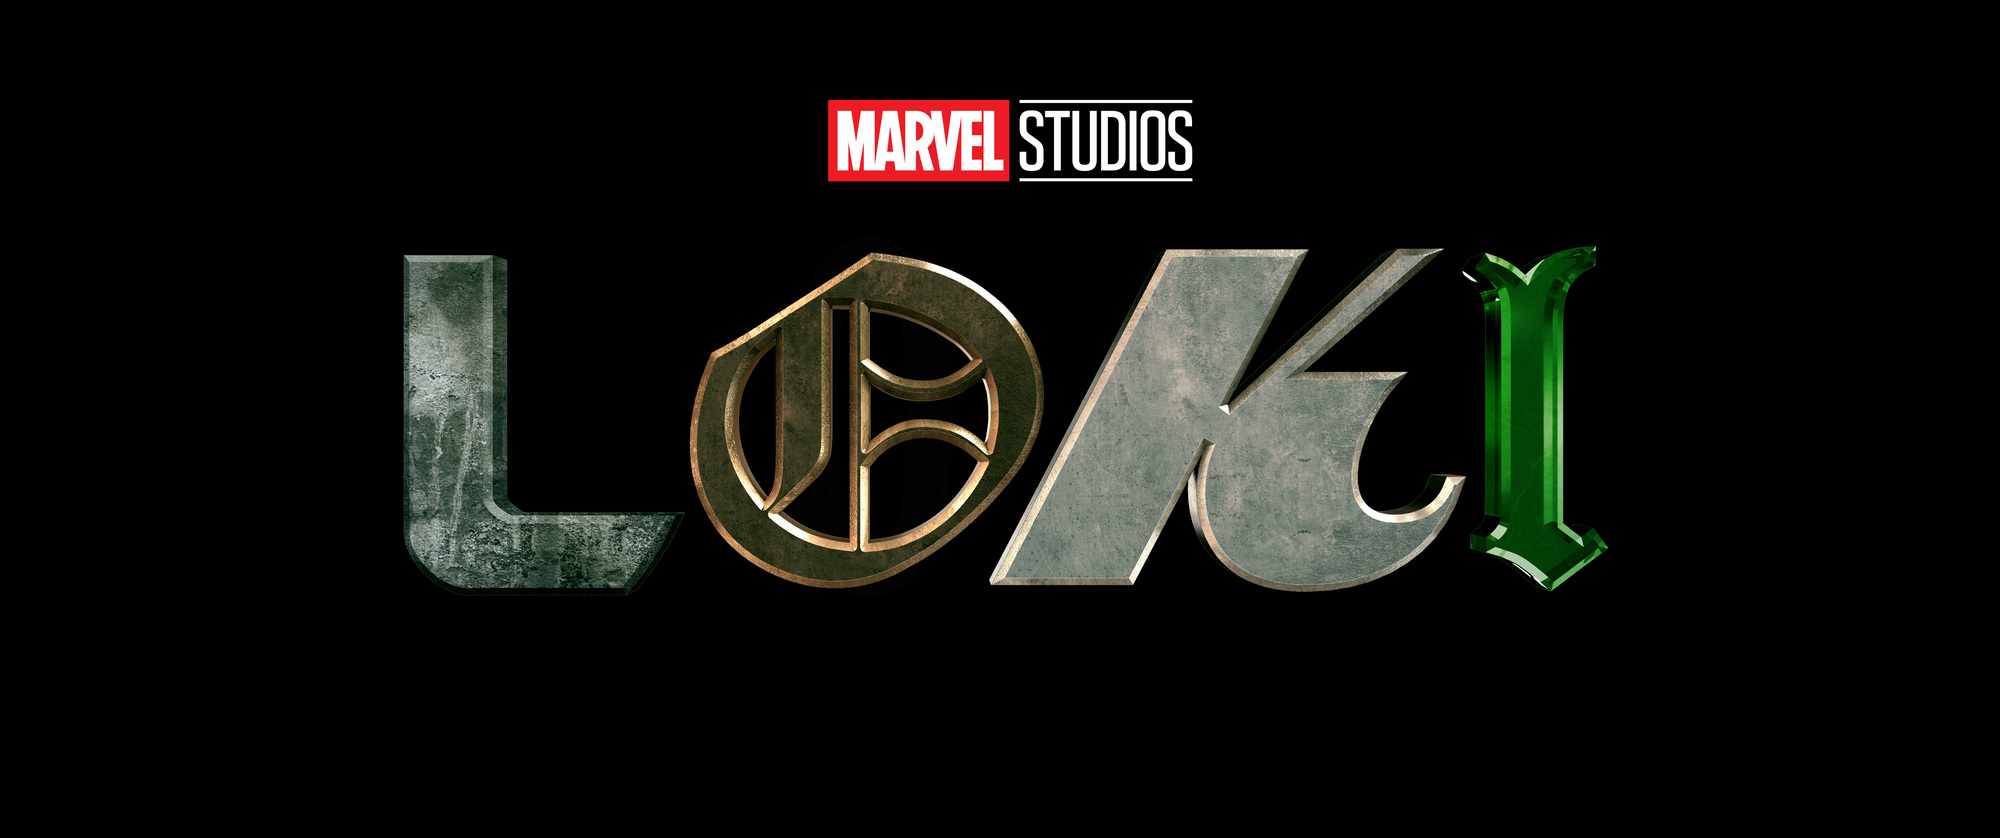 Avengers fans......ASSEMBLE! If you love Loki, then you know what is coming.